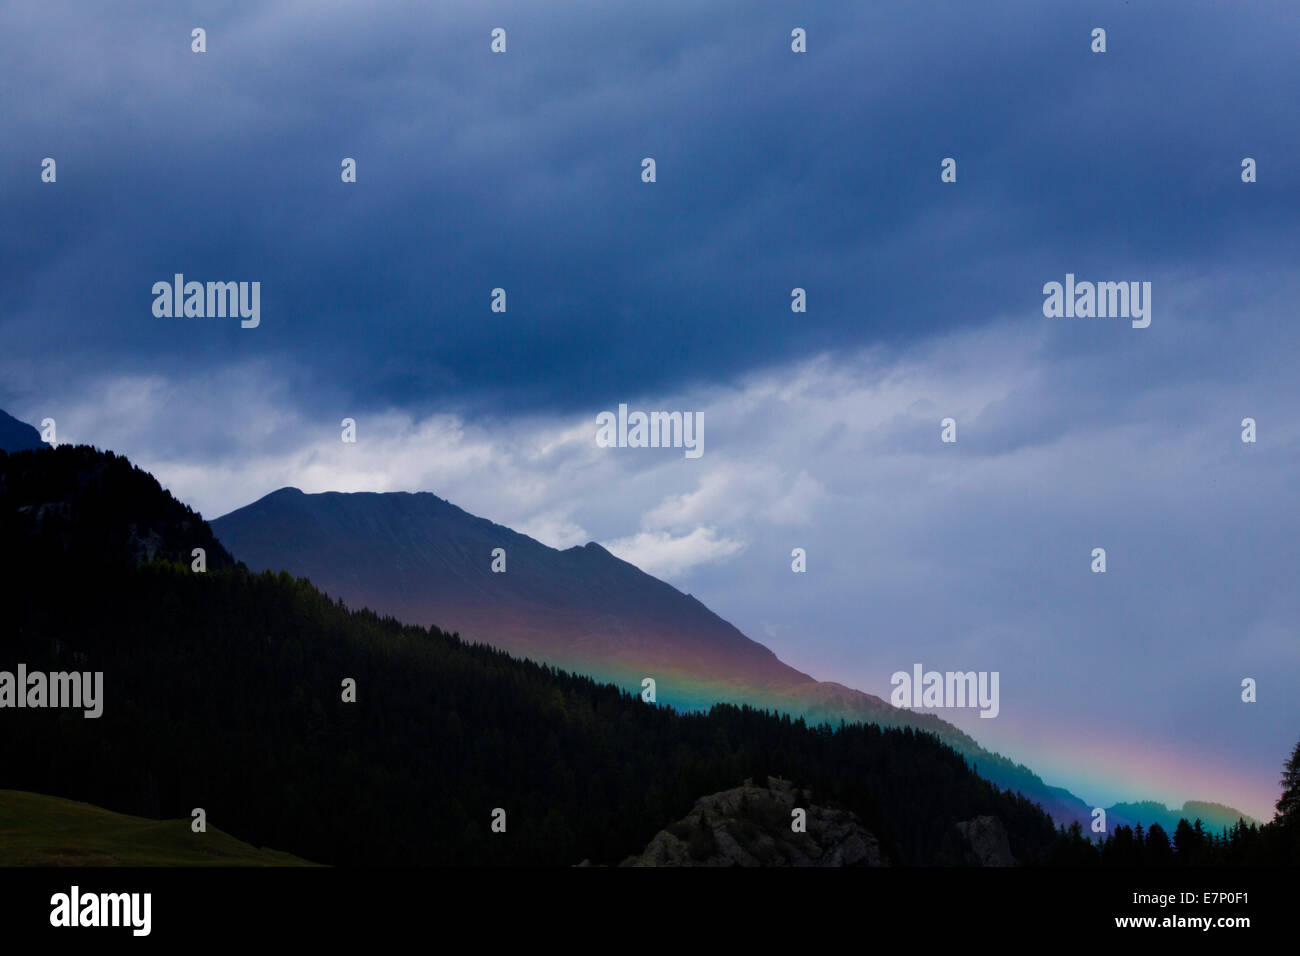 Rainbows, Oberhalbstein, clouds, cloud, mountain, mountains, autumn, weather, canton, GR, Graubünden, Grisons, - Stock Image